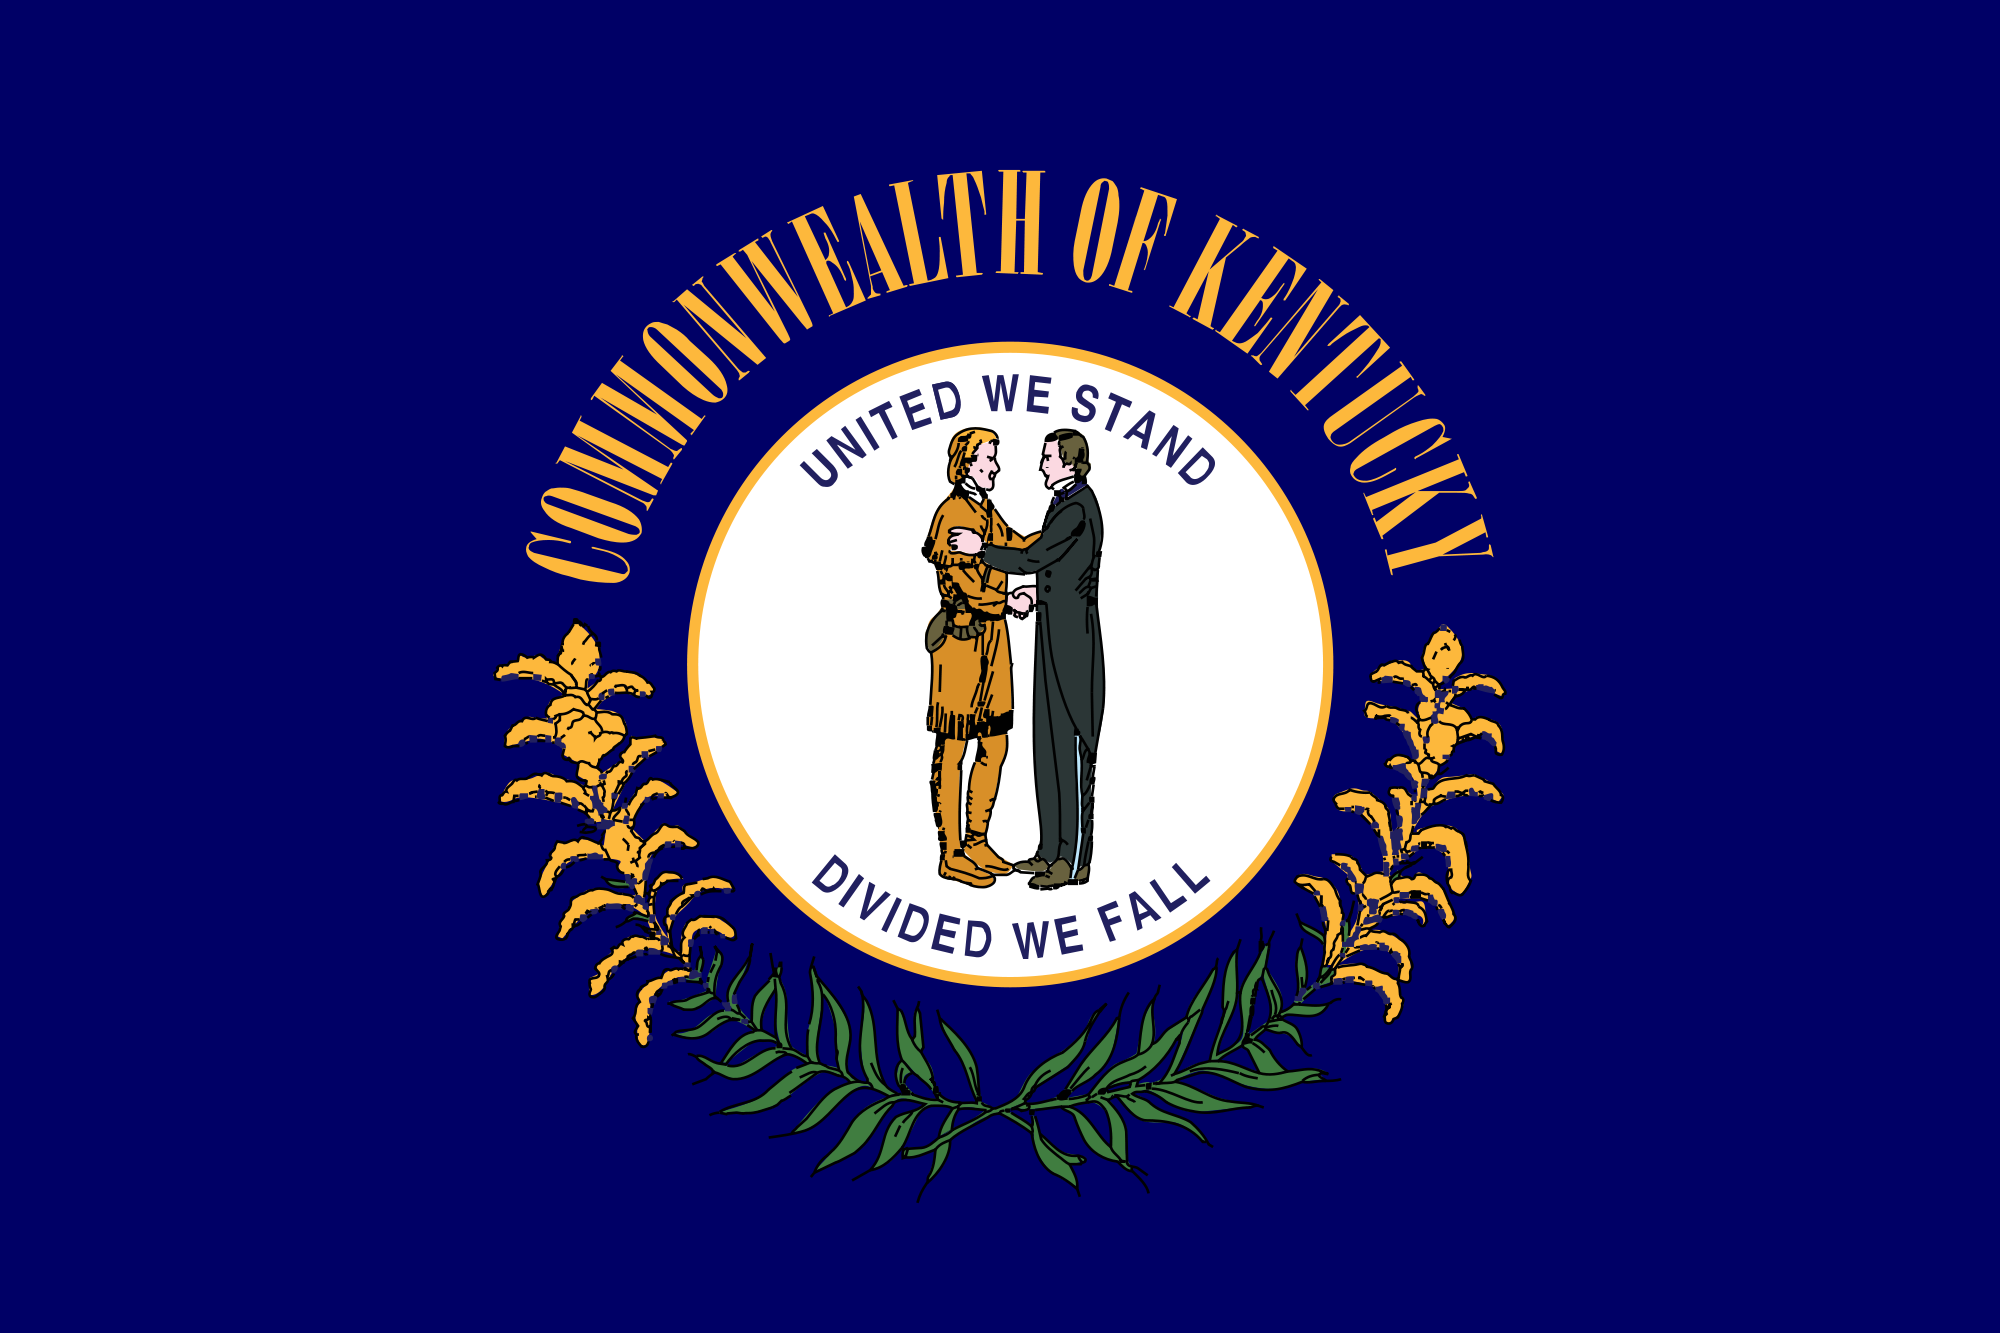 Kentucky_state_flag.png